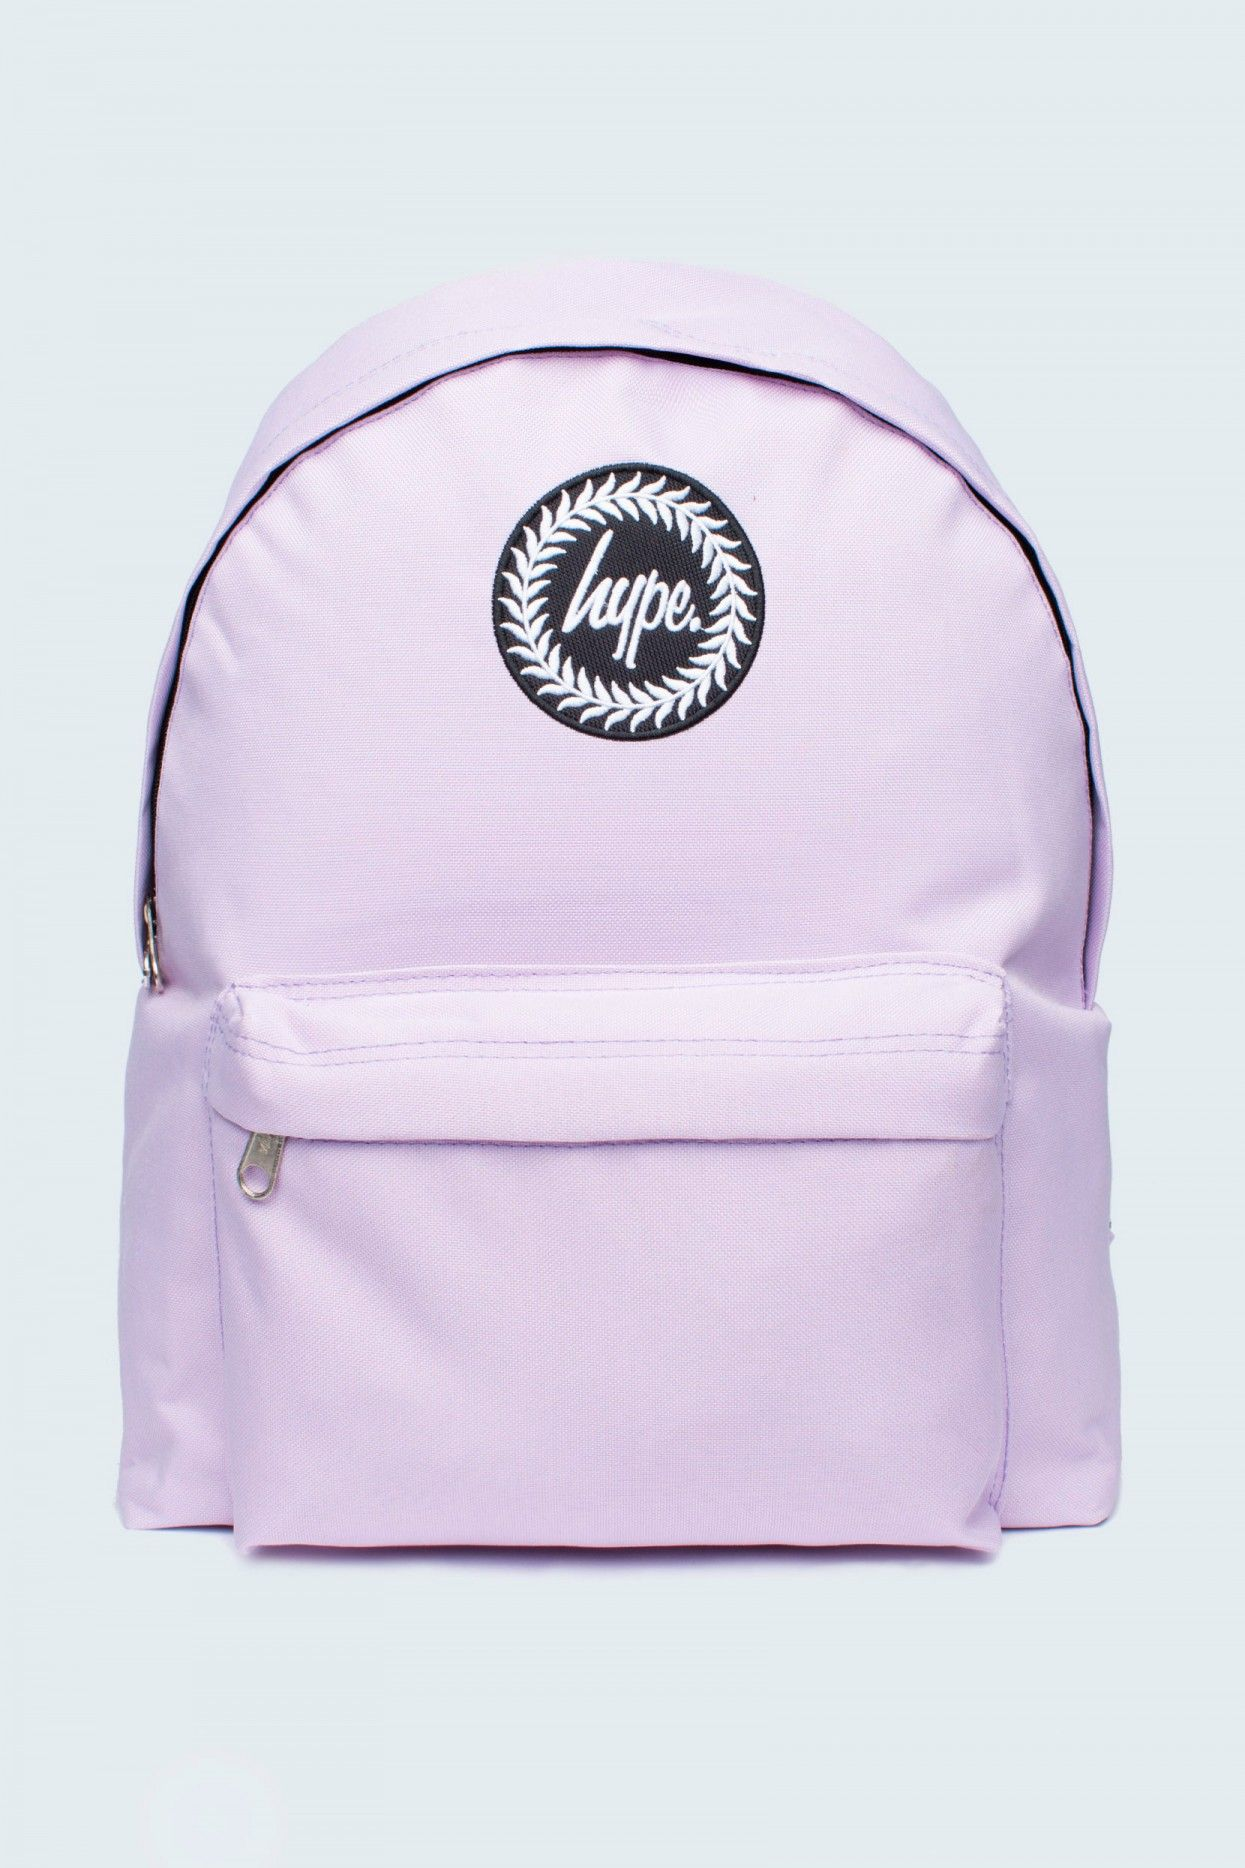 00500d08d9ec HYPE PASTEL PURPLE BACKPACK